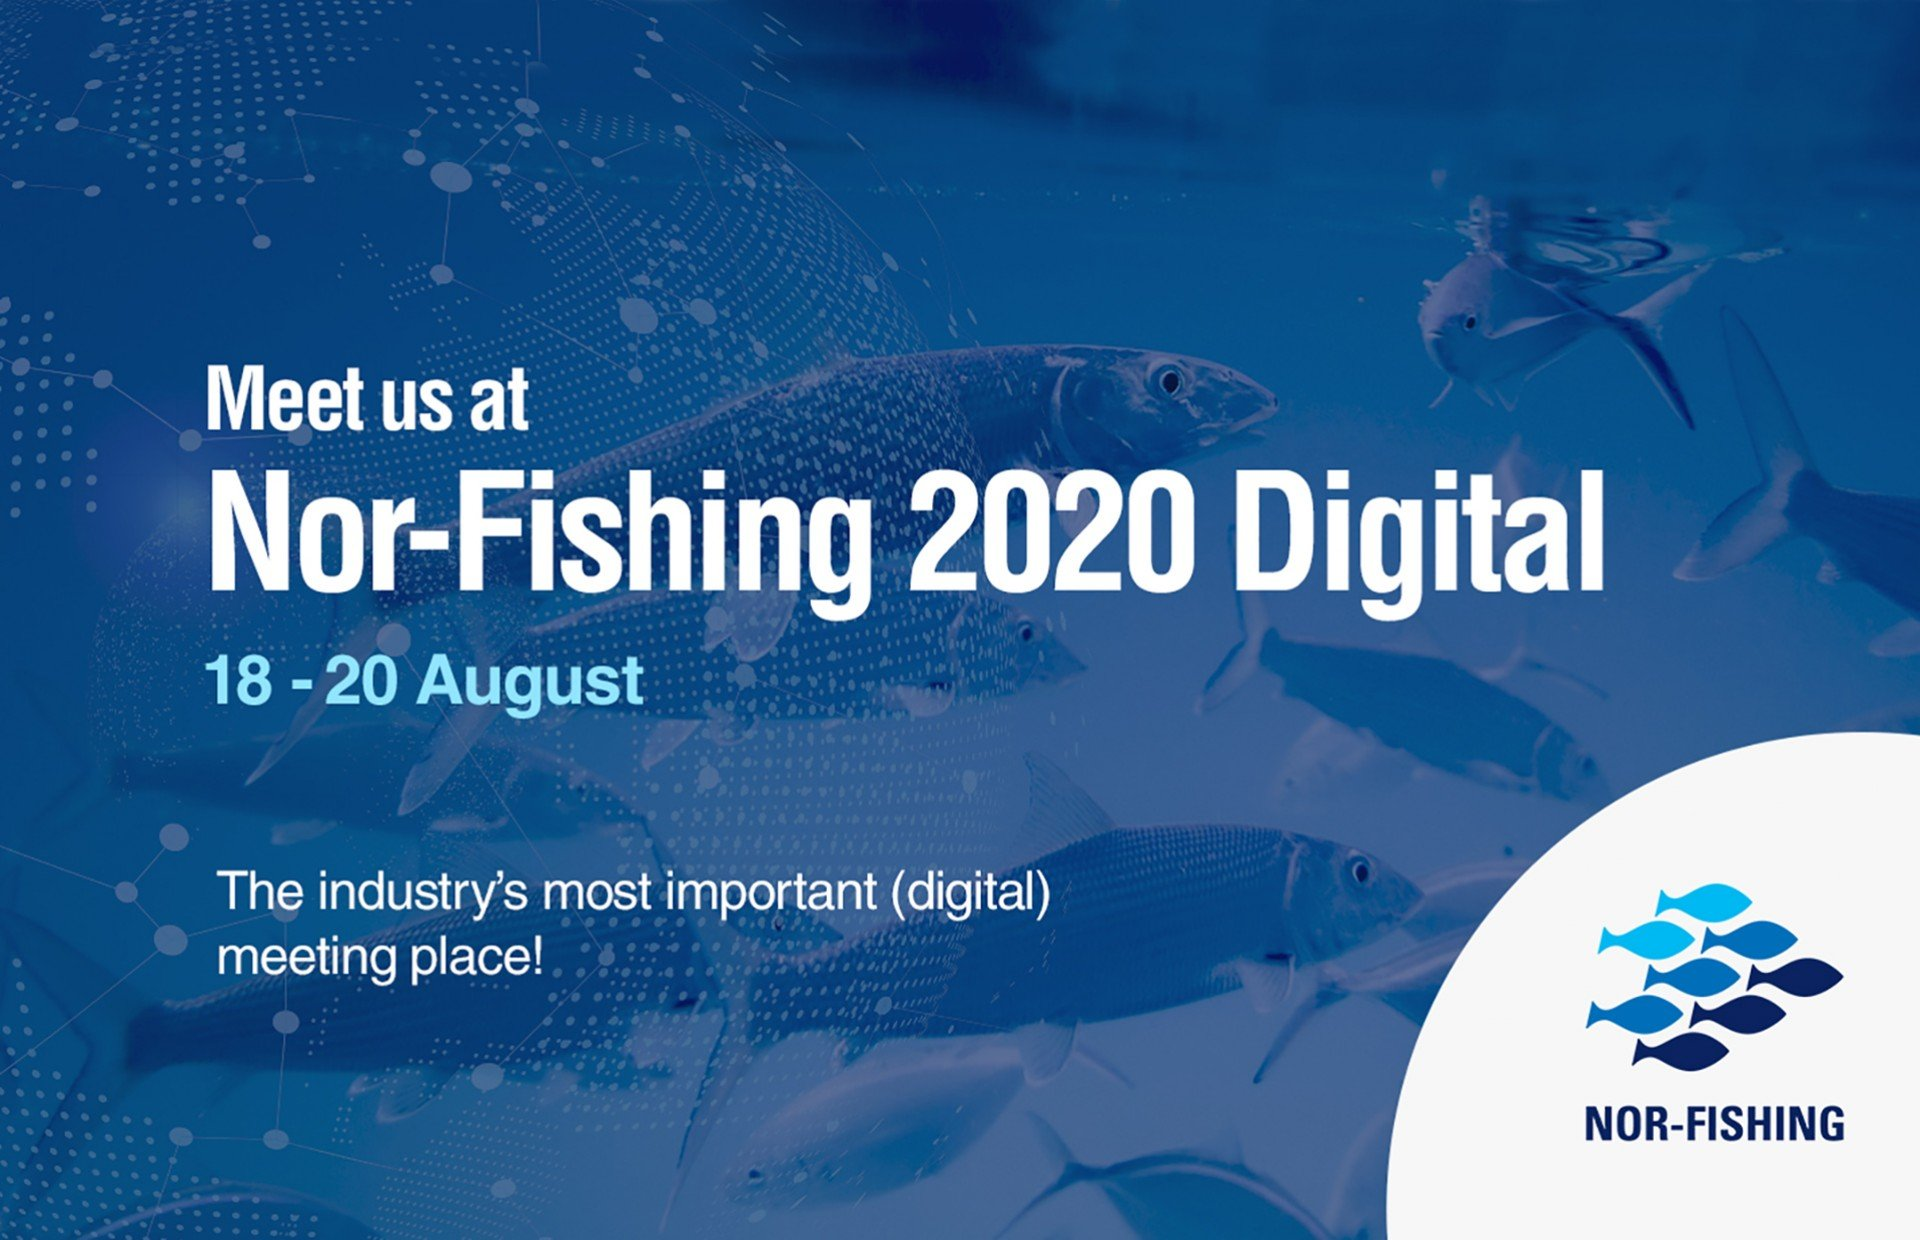 Cemre Shipyard - Nor-Fishing 2020 Digital